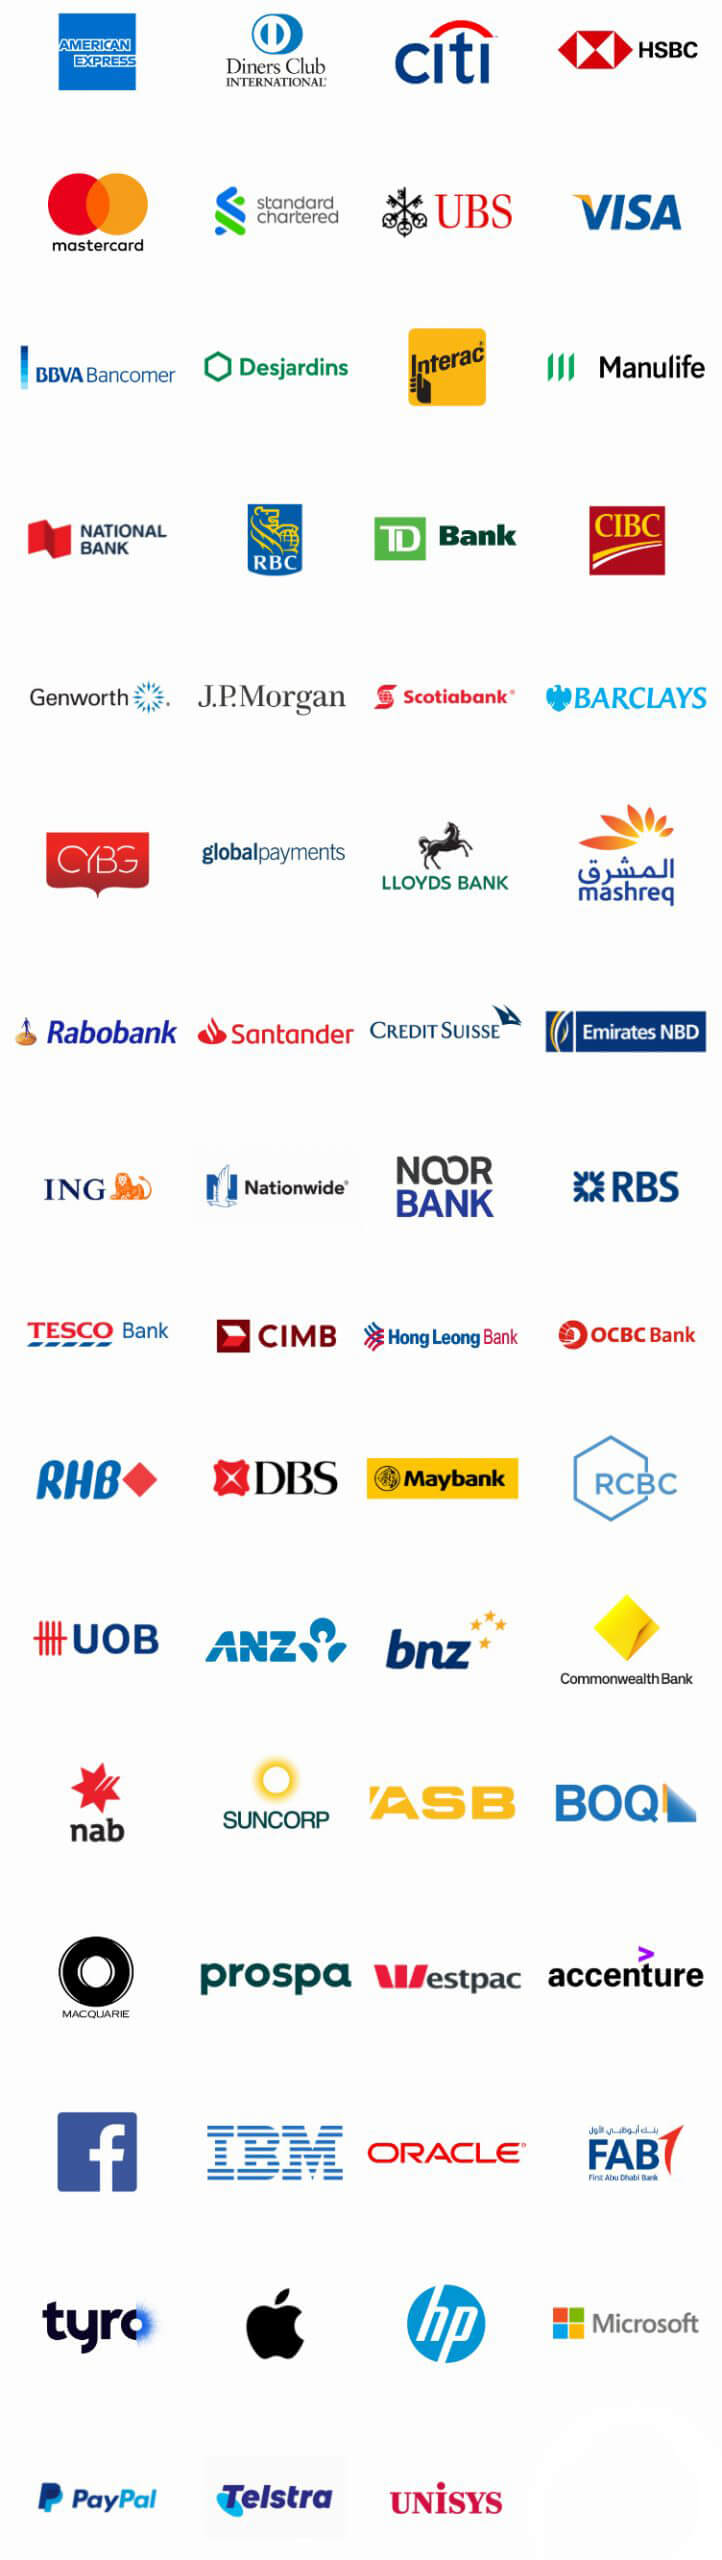 Financial, Banking, and Retail Customers of RFI Global